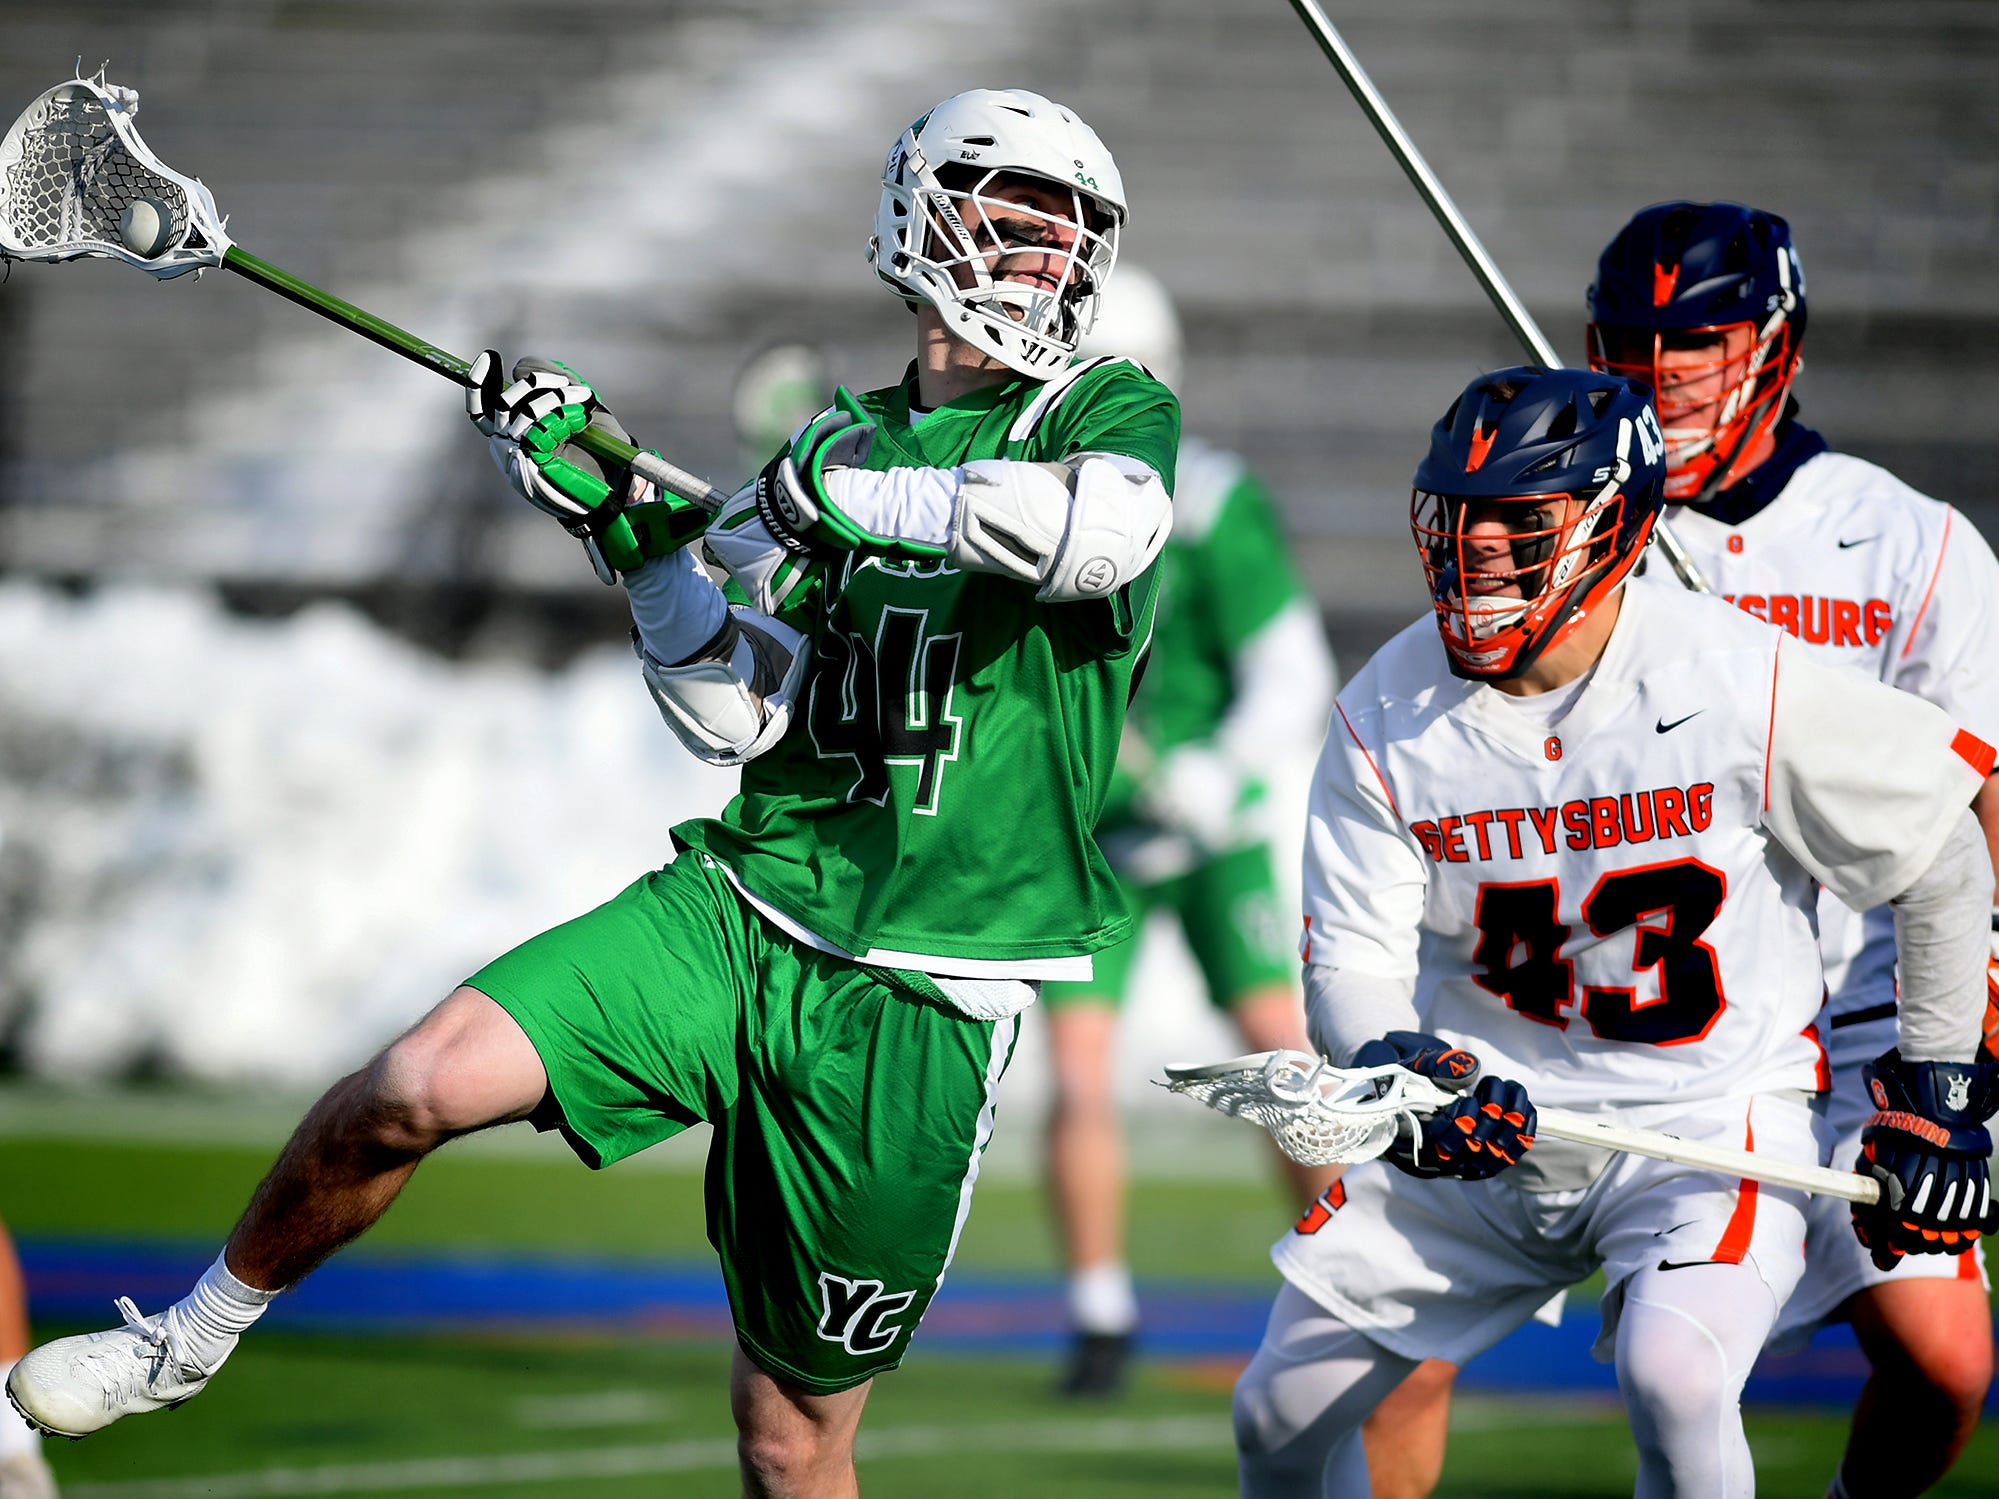 York College's Eric Ranck takes a shot in front of  Gettysburg College's Connor Leach during lacrosse action at Gettysburg Wednesday, March 6, 2019. Both teams were ranked in the top 10 nationally in NCAA Division III men's lacrosse coming into the game. York won 14-6. Bill Kalina photo